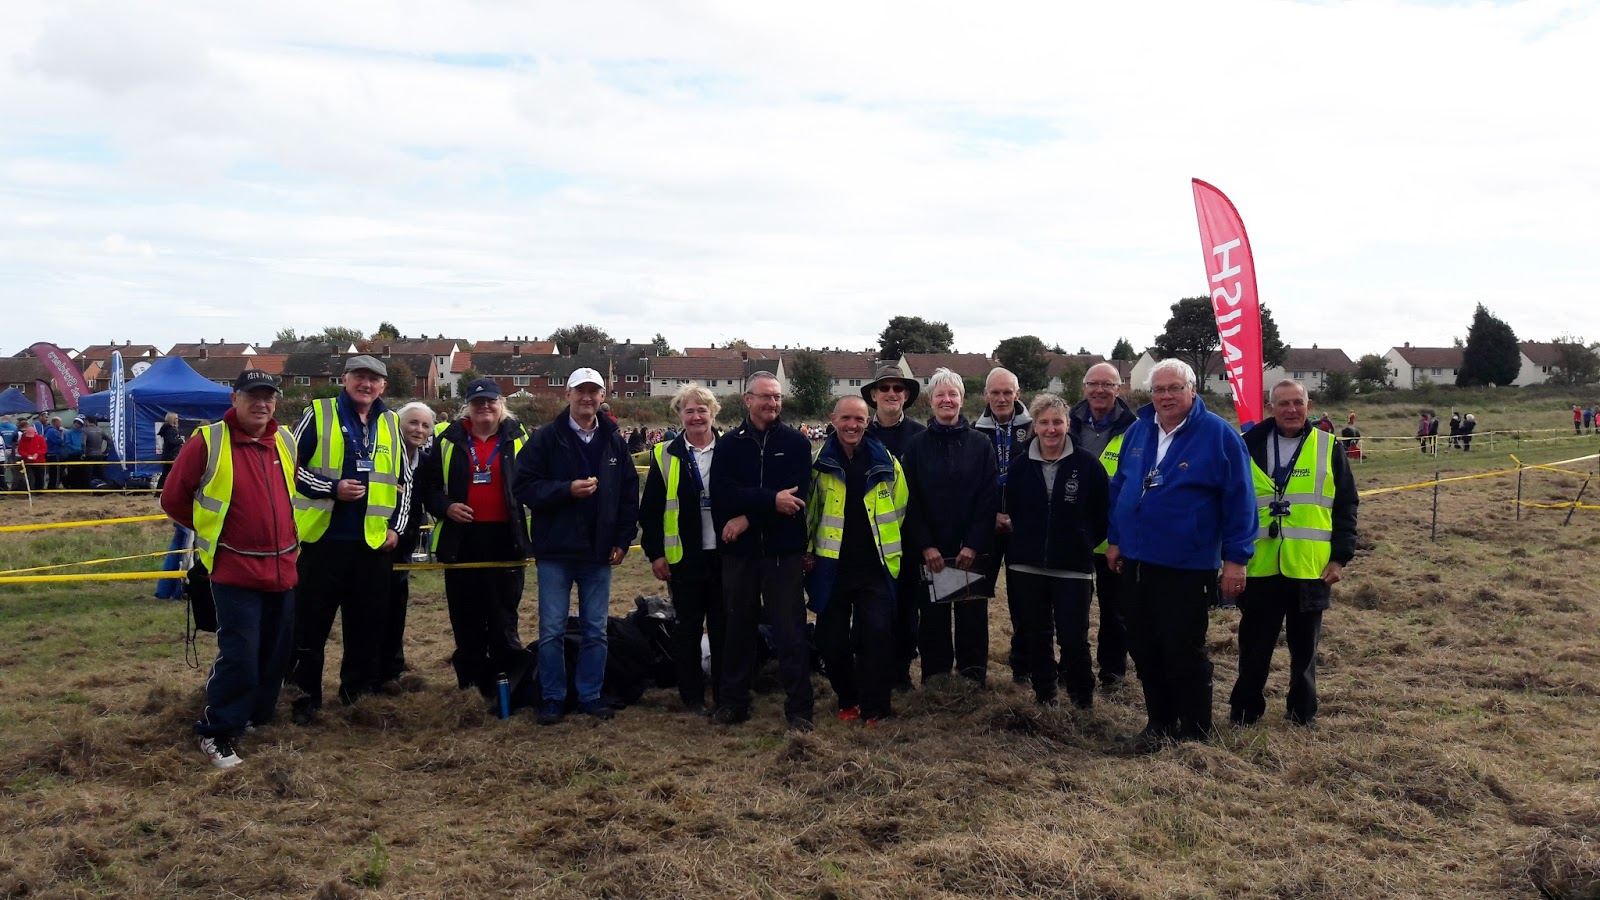 start fitness north eastern harrier league september 2017aside for those issues it\u0027s been a great day, and i would just like to say a massive thank you to all of the results team, officials and to saltwell for